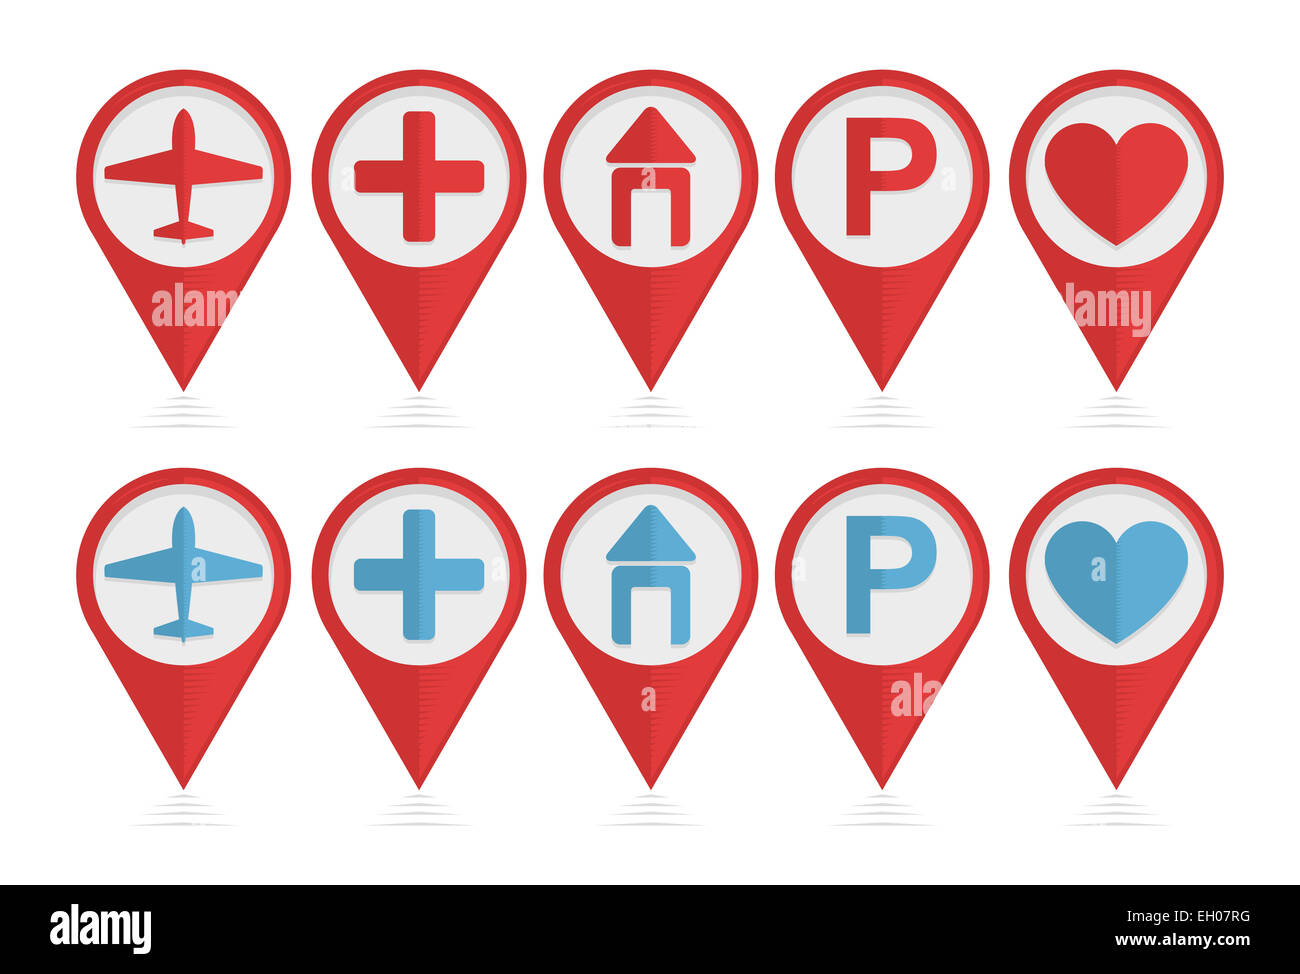 Vector set of pointers with airplane, hotel, parking, health icons Stock Photo